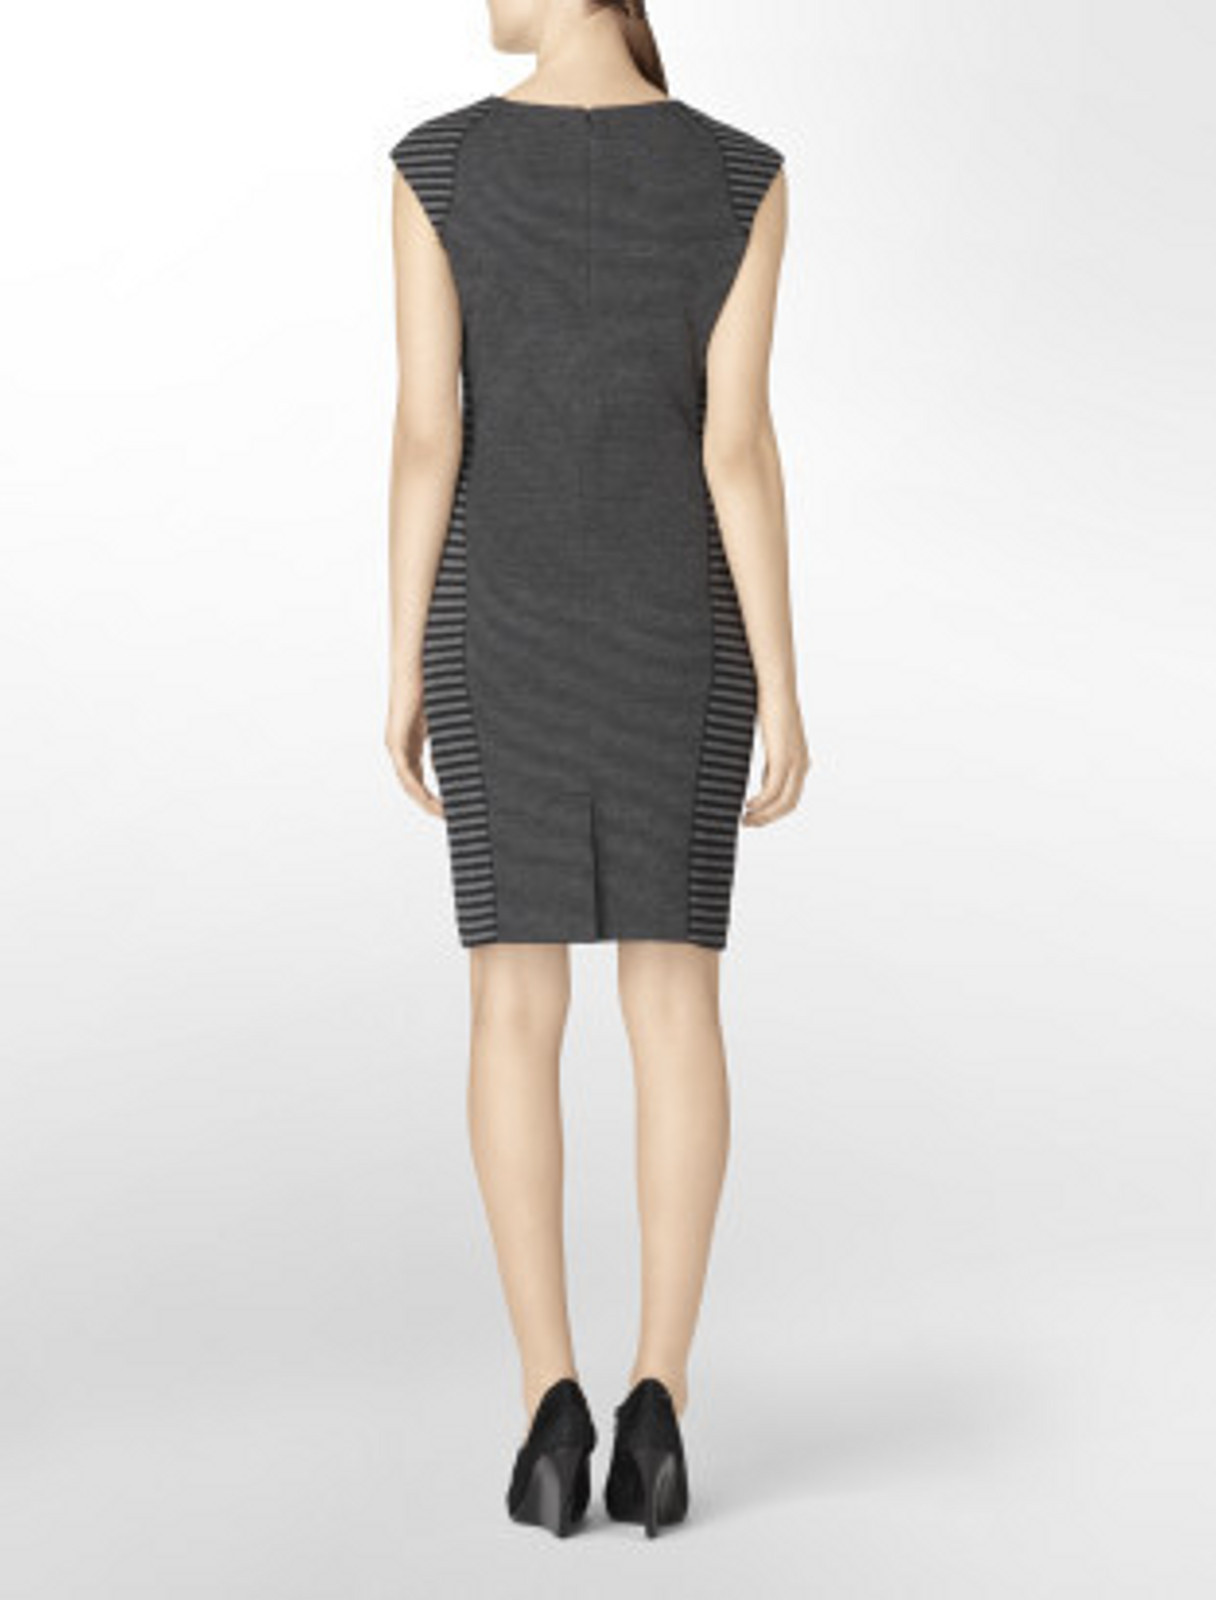 CALVIN KLEIN DRESS SIZE 12 BLACK/CHARCOAL STRIPE  SHEATH SLEEVELESS NWT